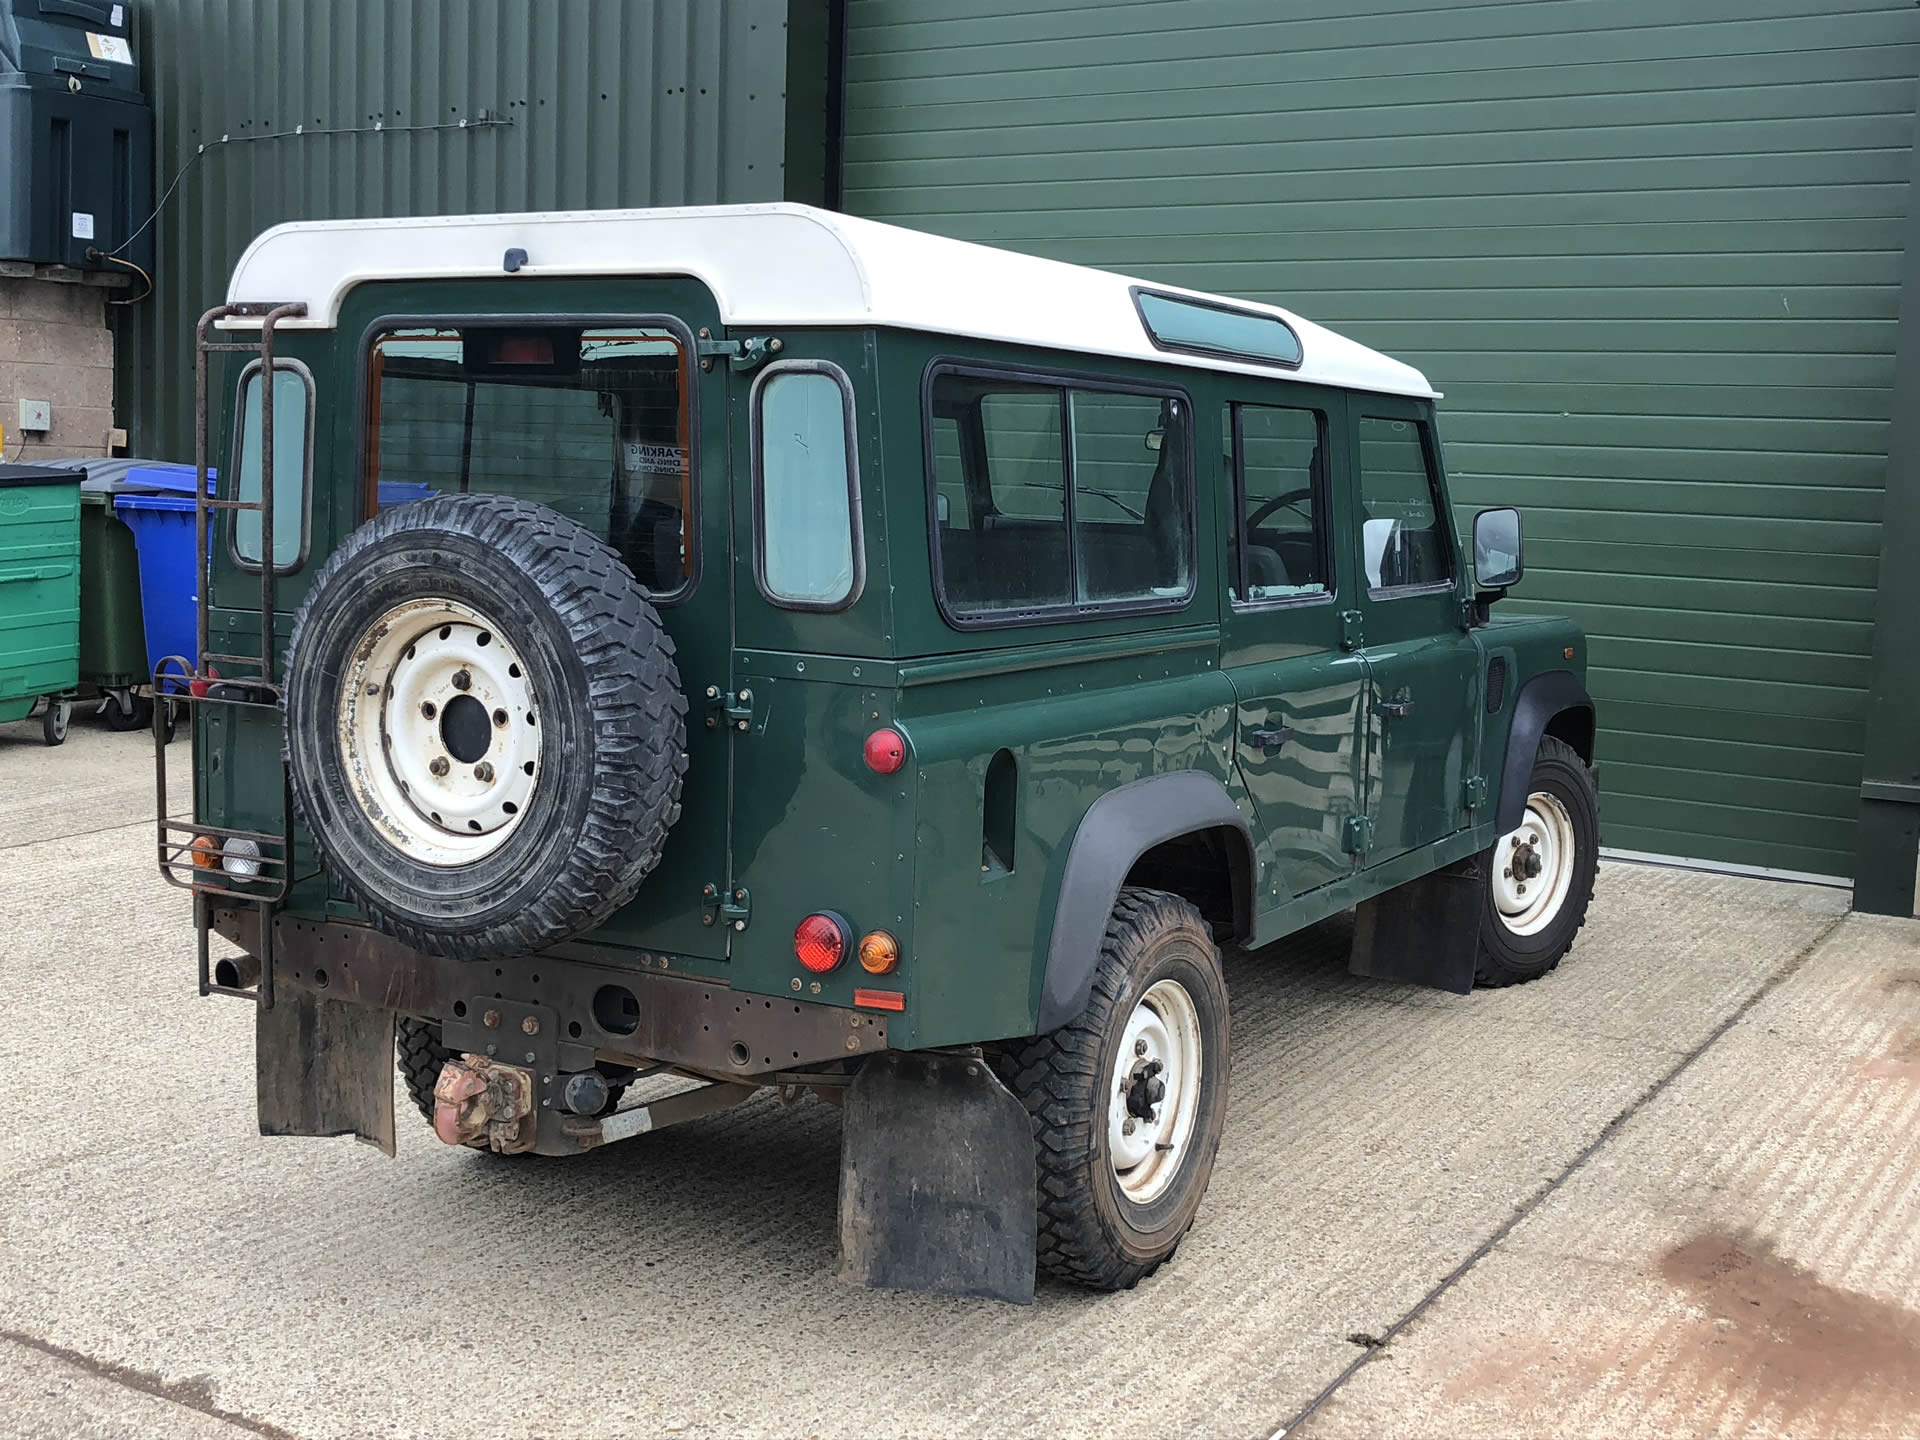 ACHSV custom vehicle builds firstly require a donor vehicle to start the design and build process from like this basic green Land Rover Defender 110.